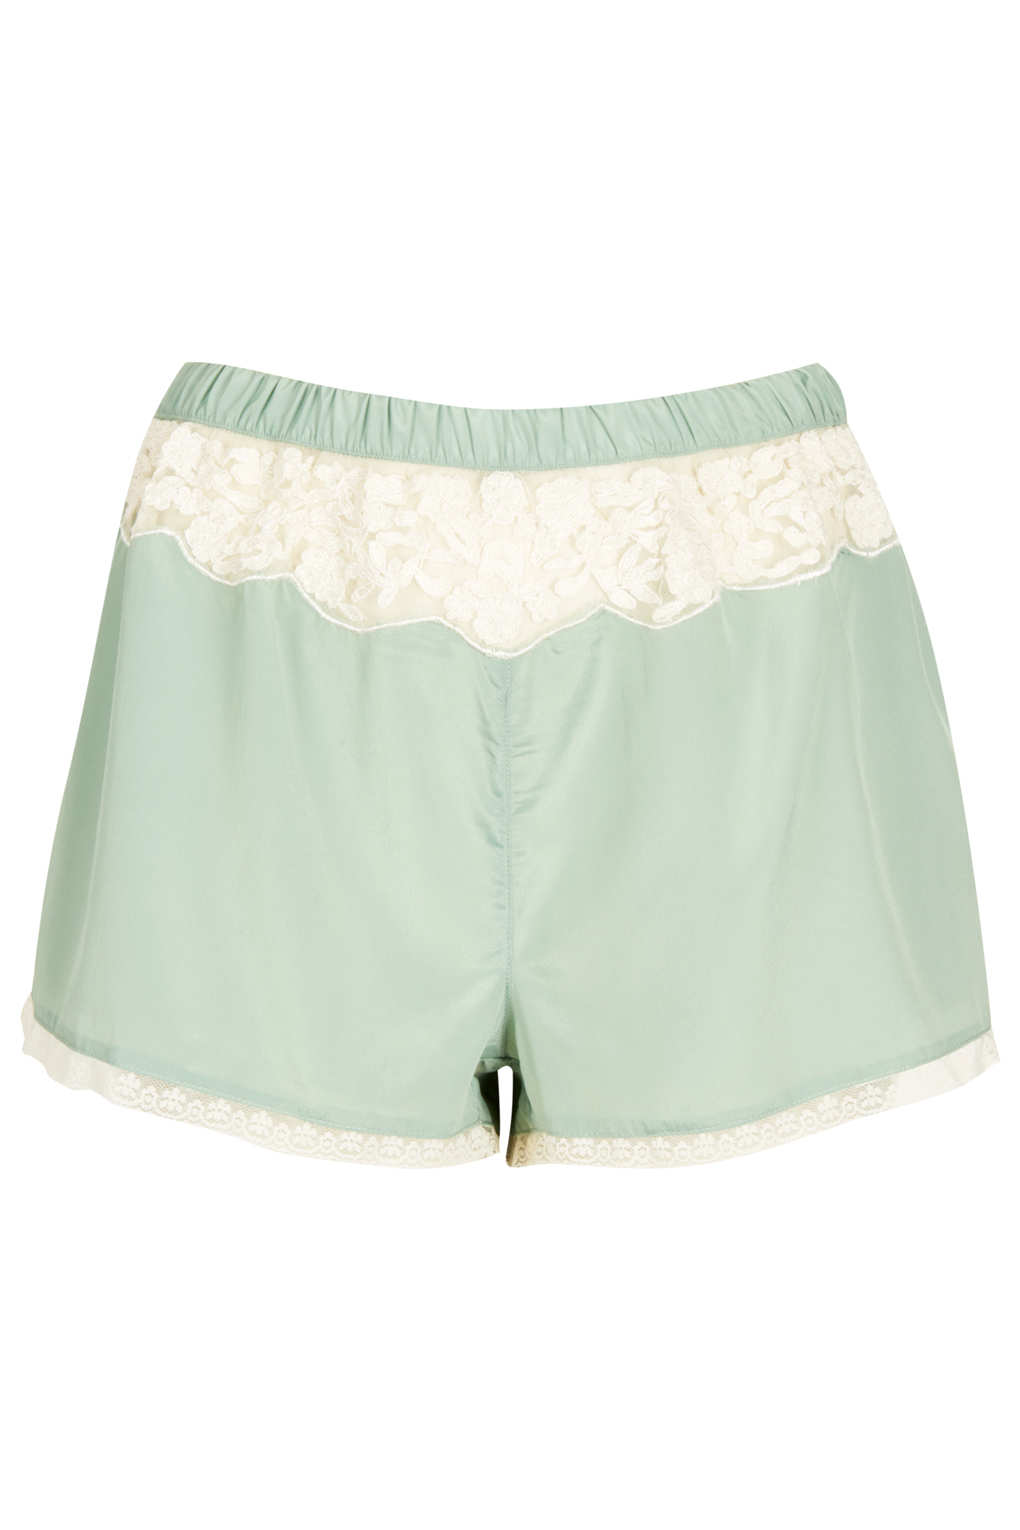 Lyst Topshop Vintage Style Pyjama Shorts In Green